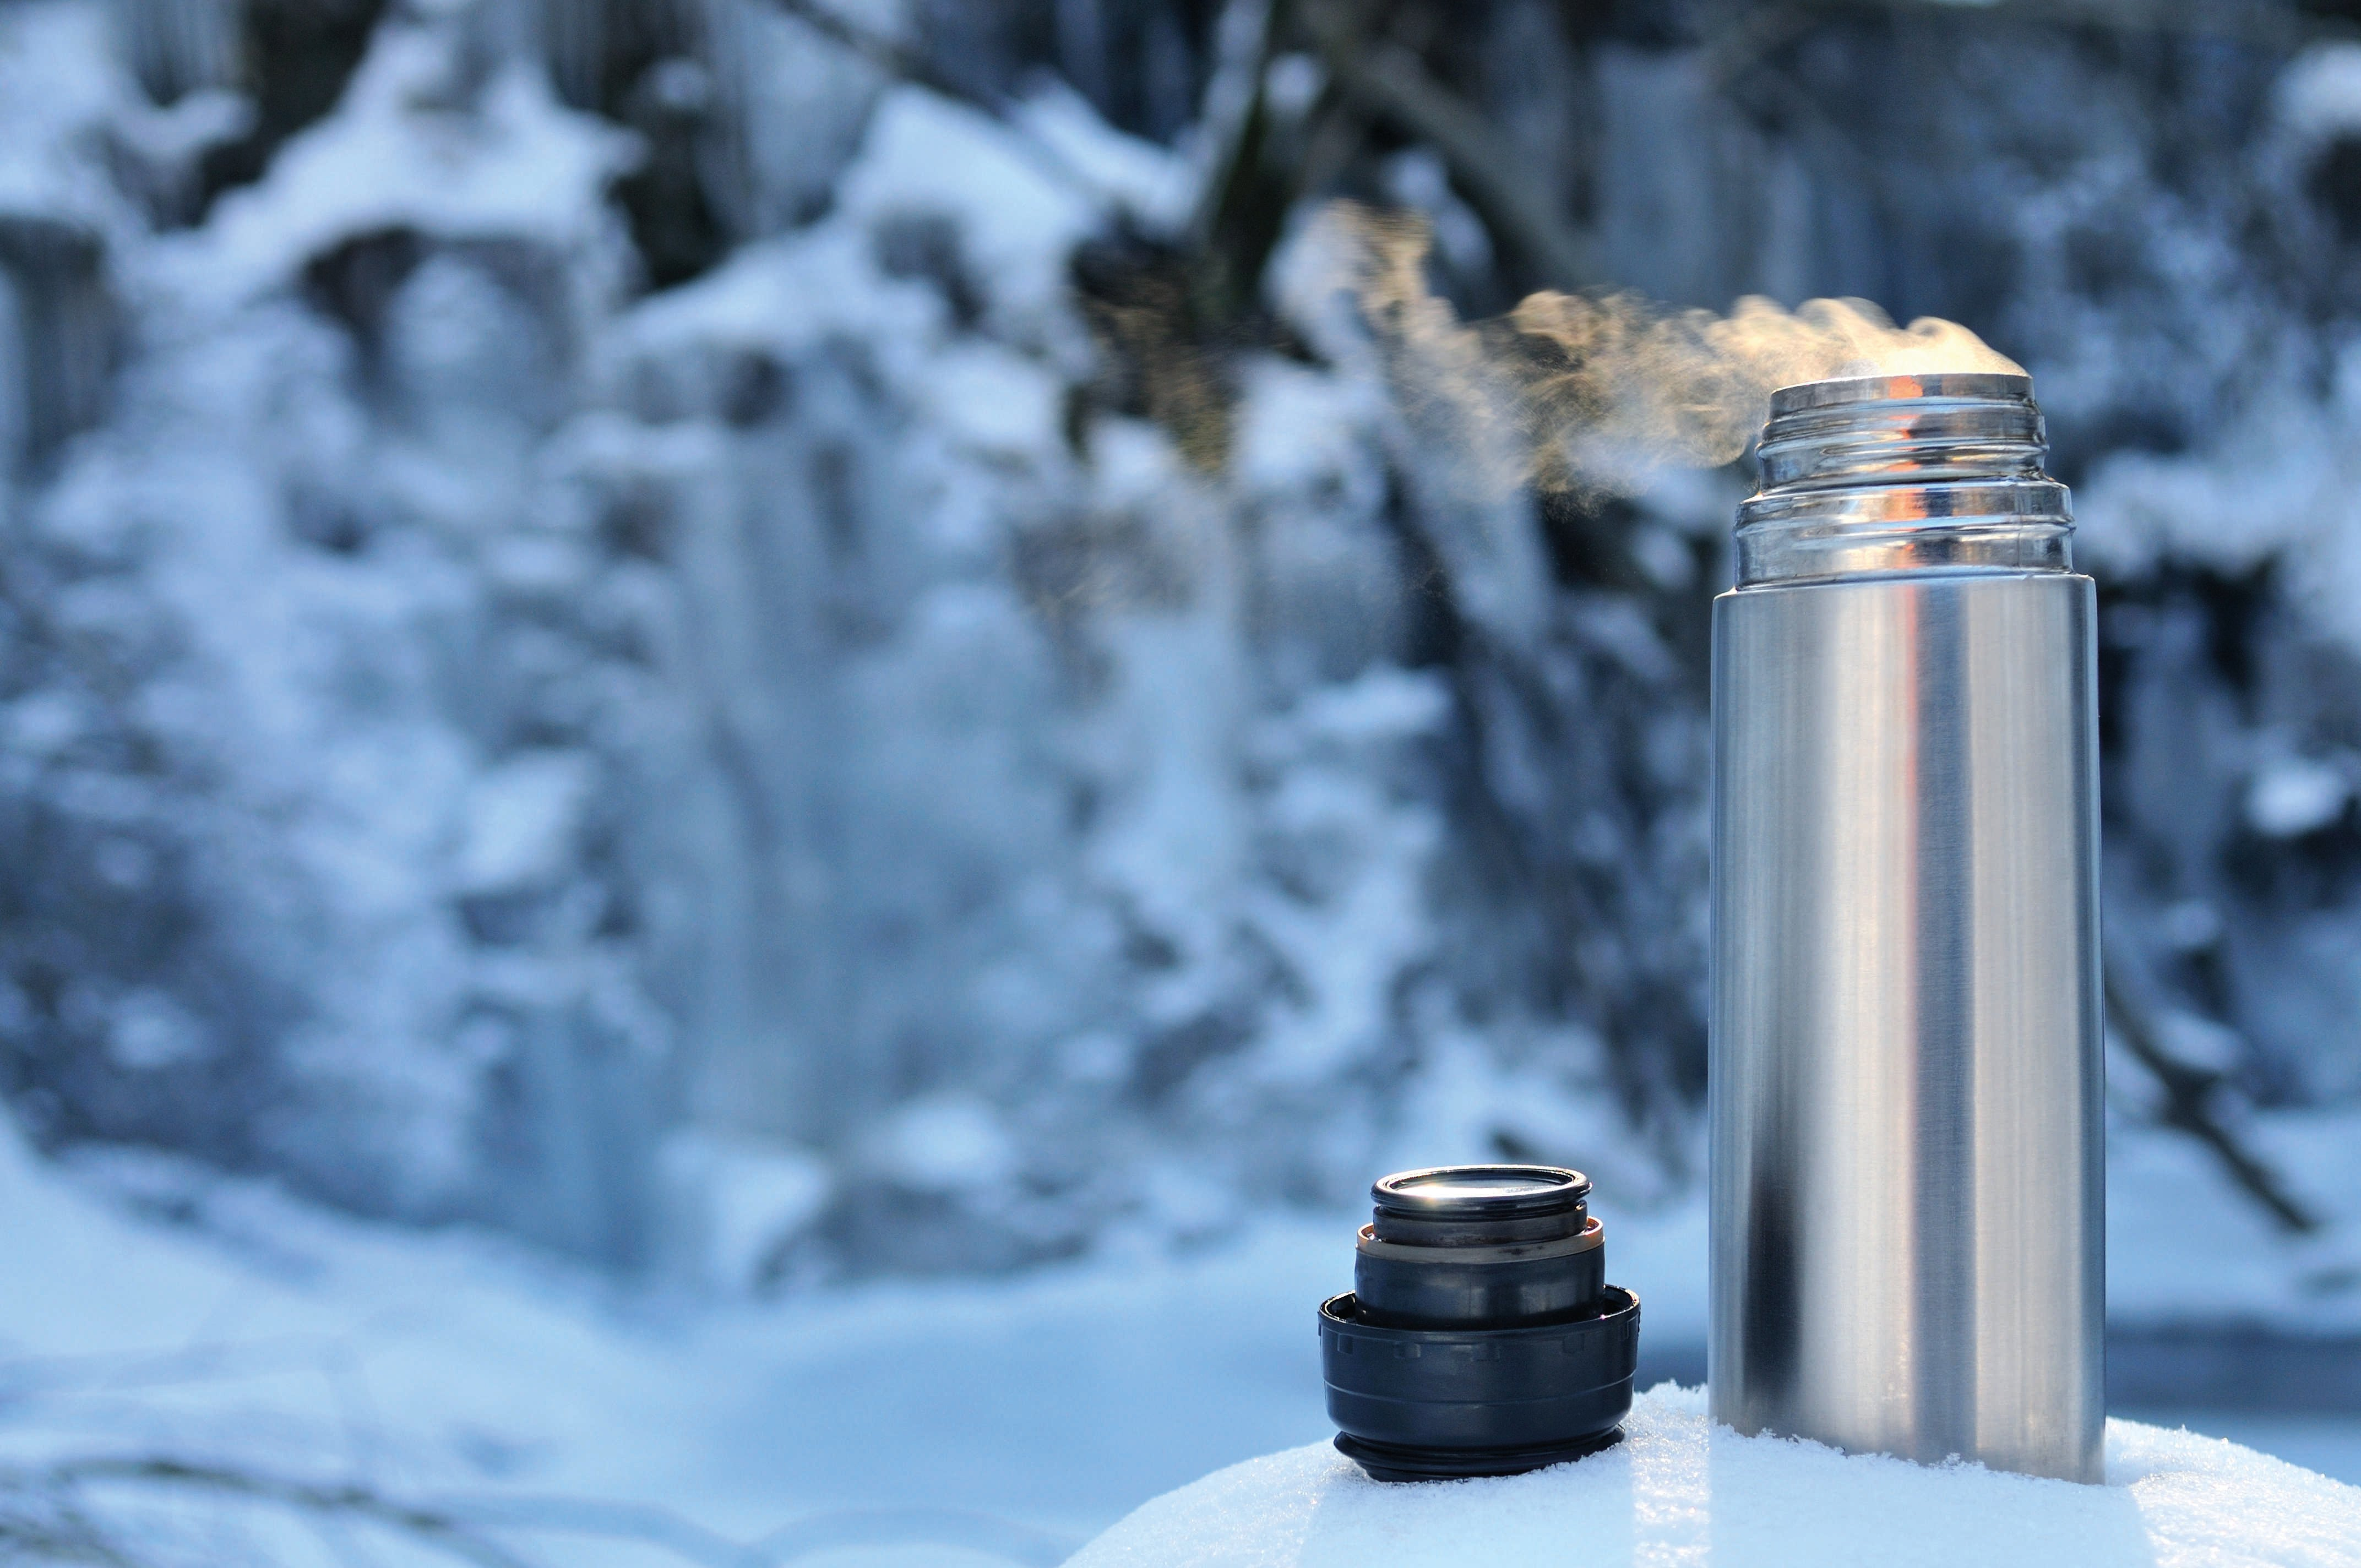 Thermos in the snow